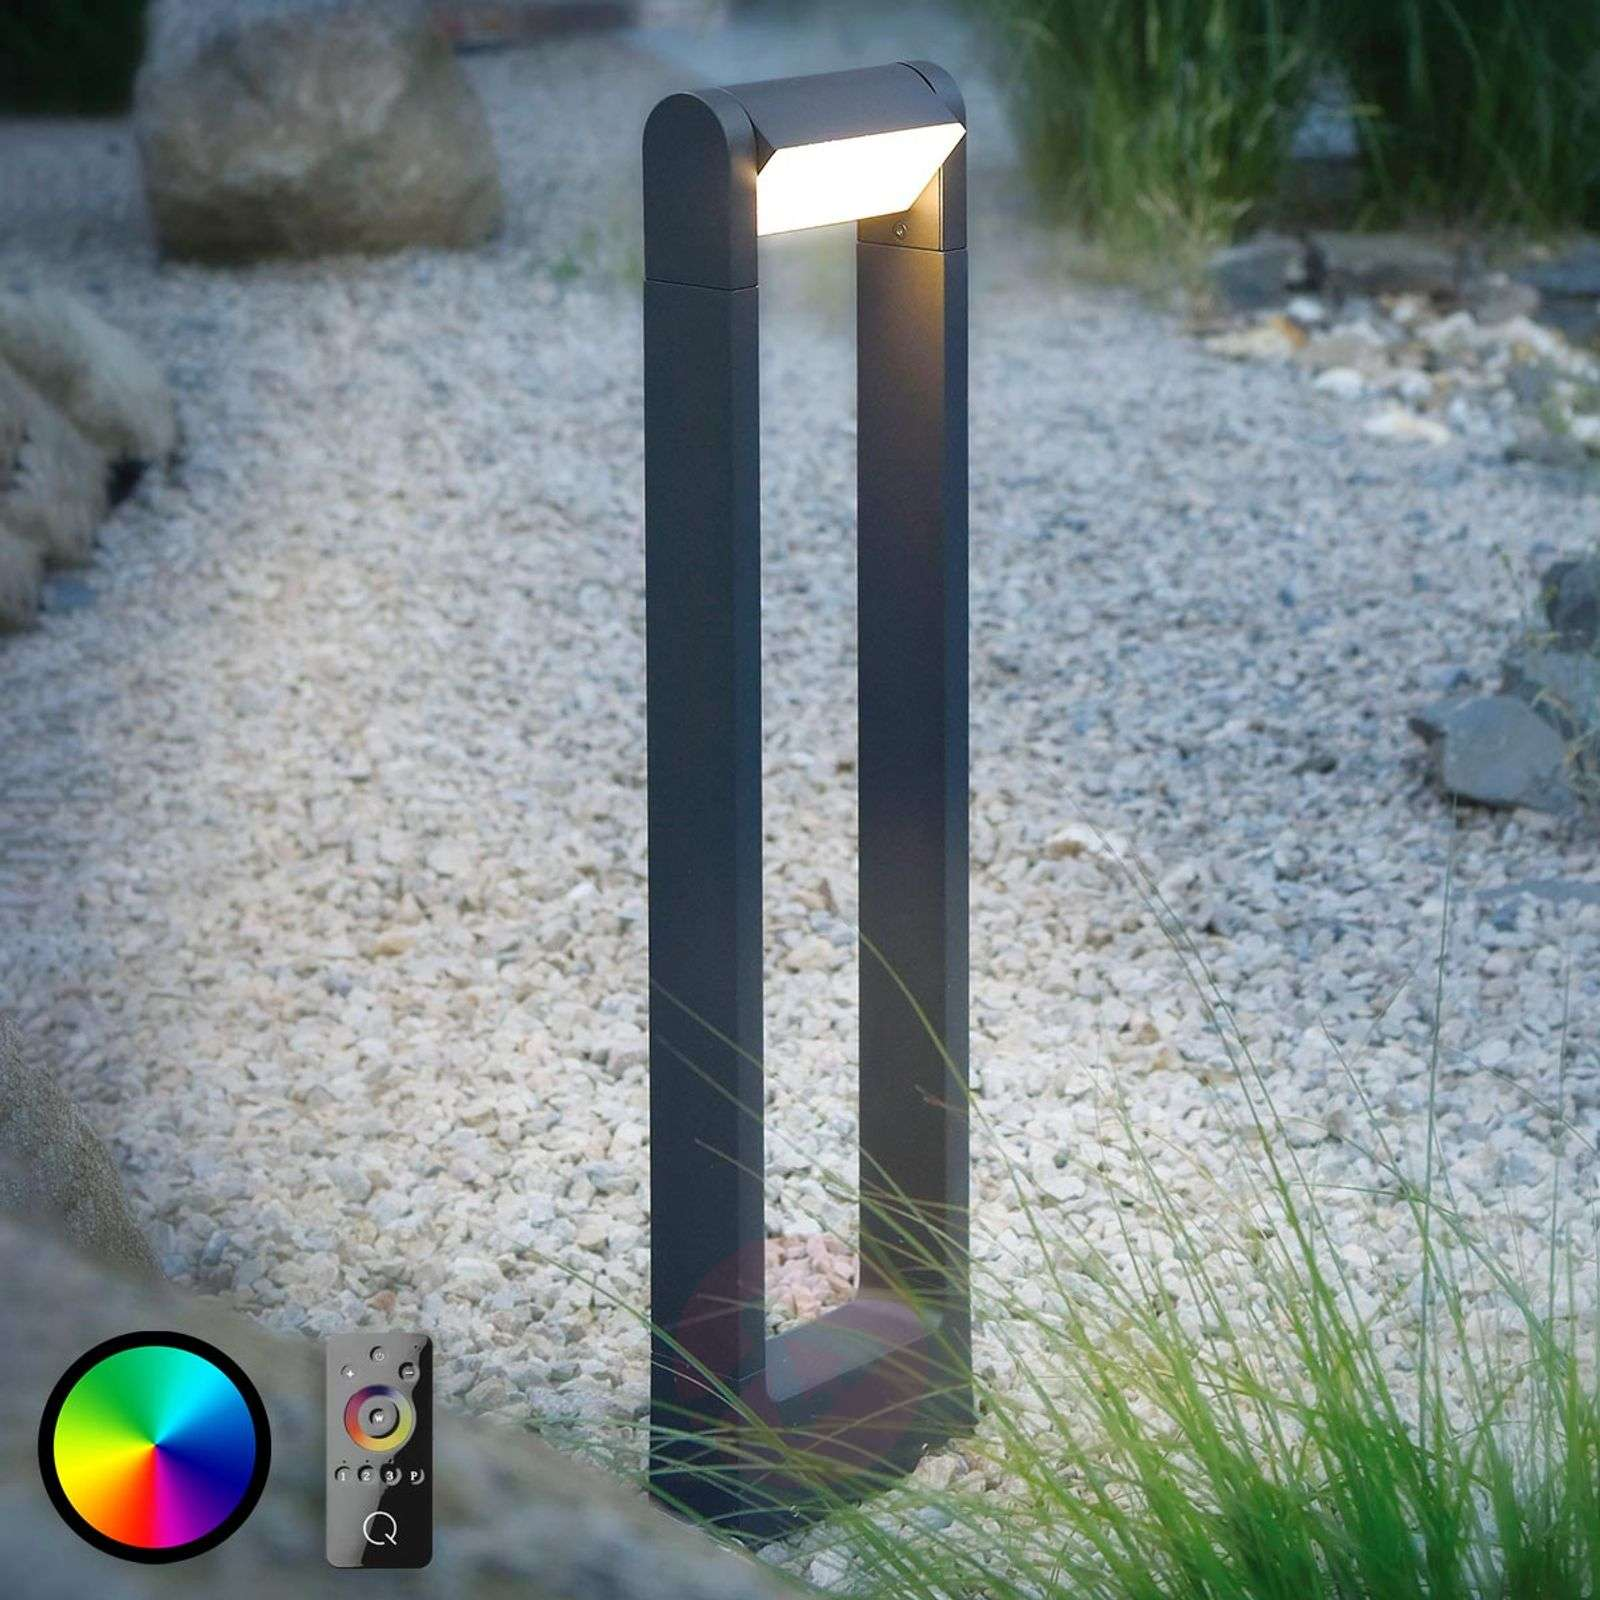 Borne lumineuse LED Q-Albert en anthracite-7610601-01